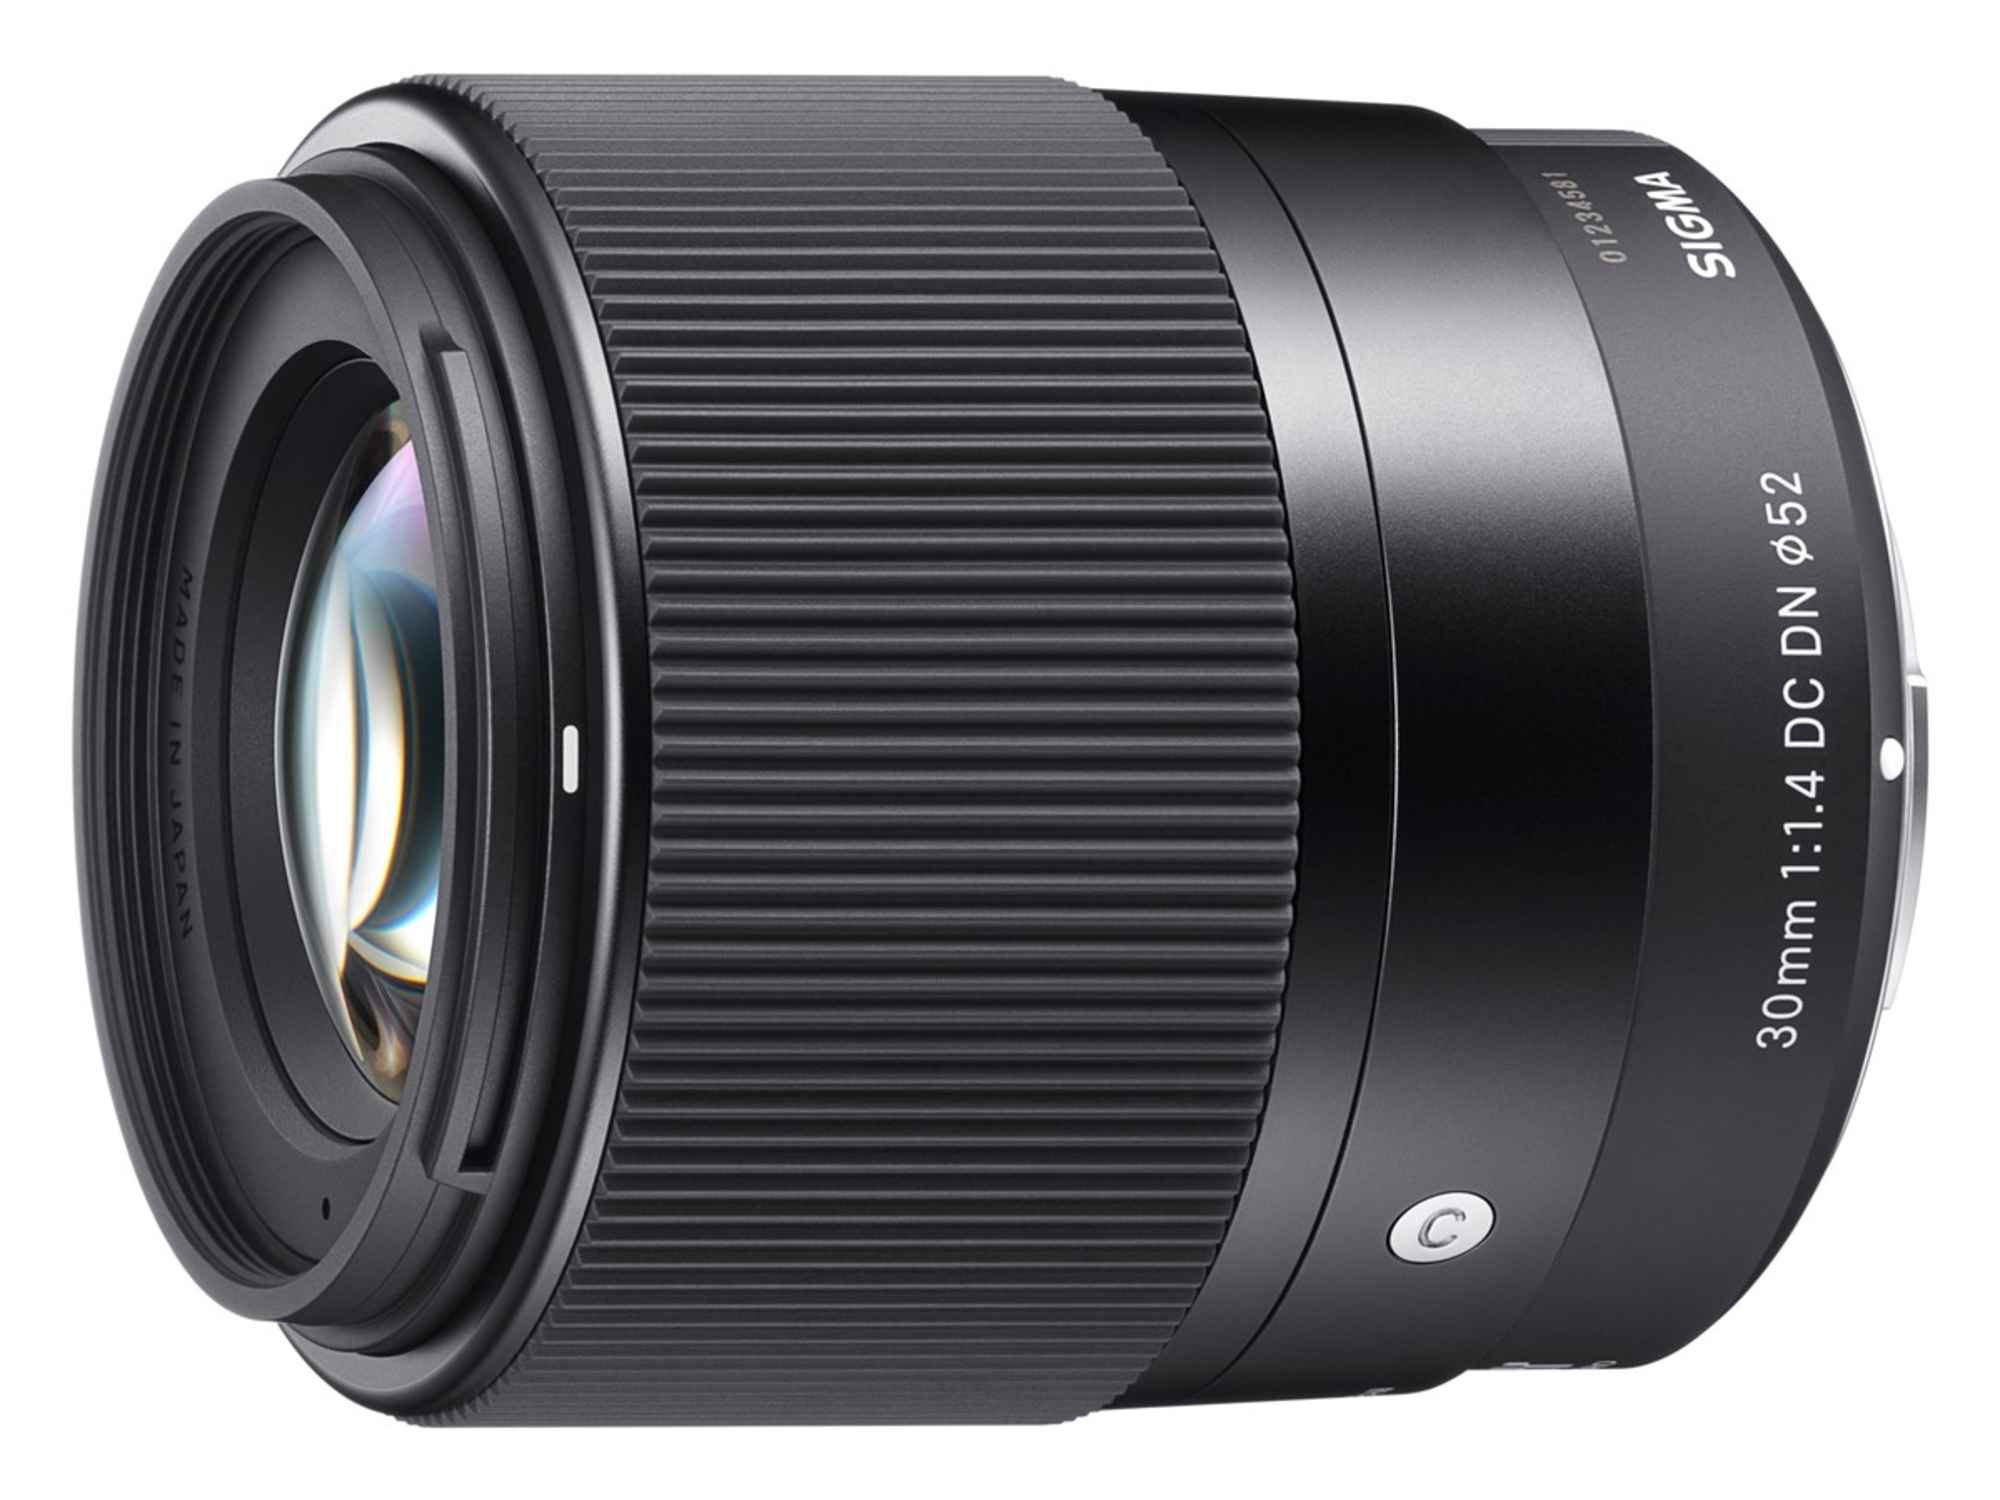 New Gear Sigma 30mm f1.4 DC DN Contemporary for Mirrorless Cameras